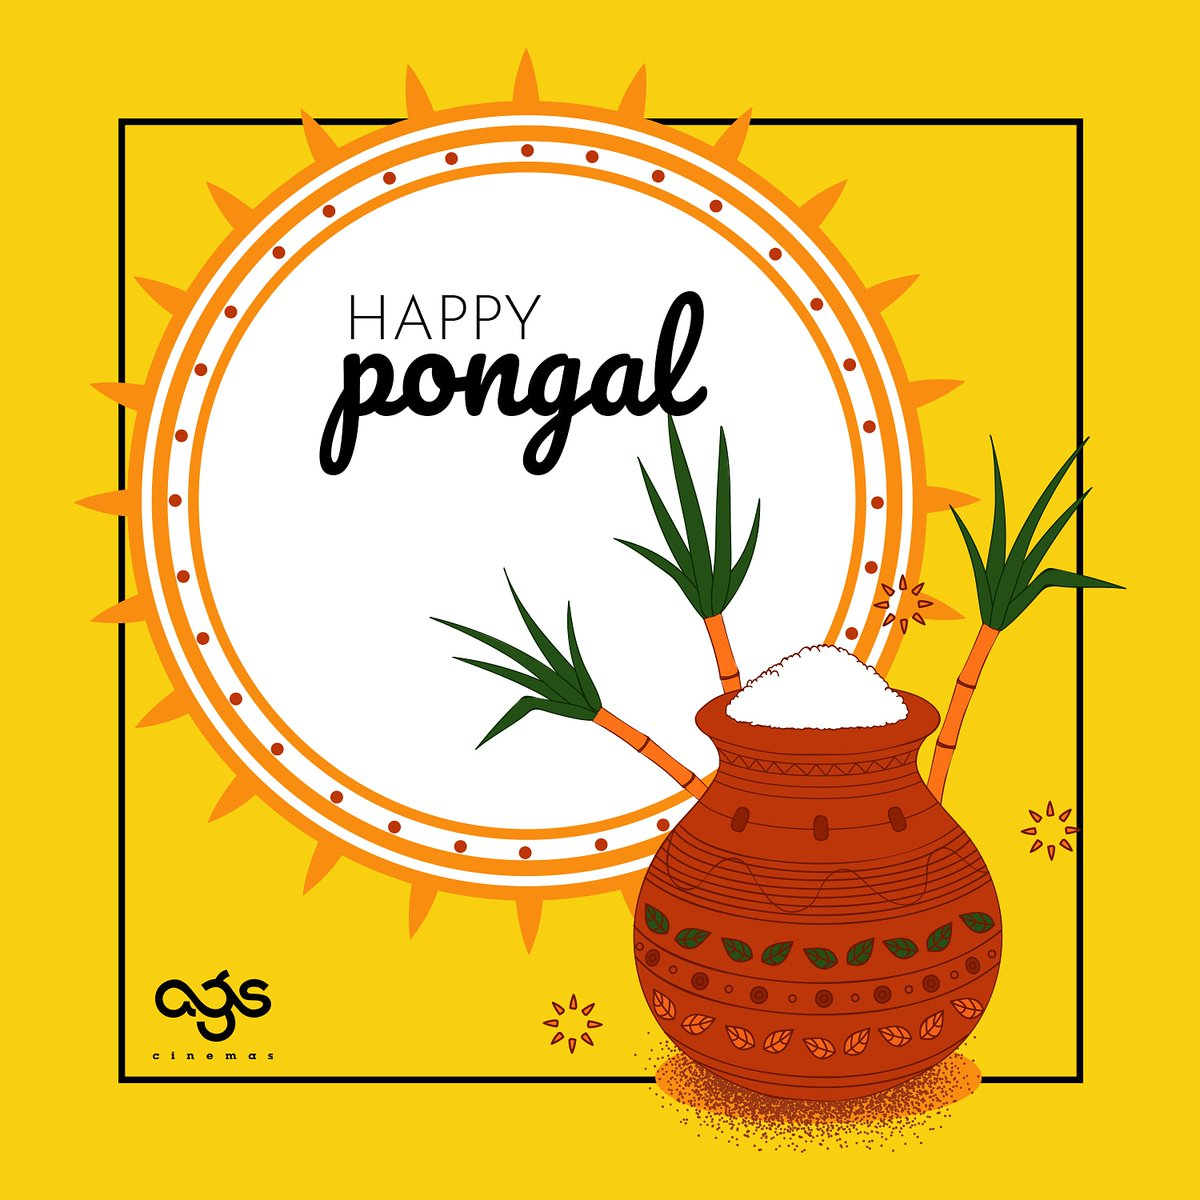 Wish you all a very #HappyPongal! May this year be prosperous and fulfilling!!  #HappyMakarSankranti